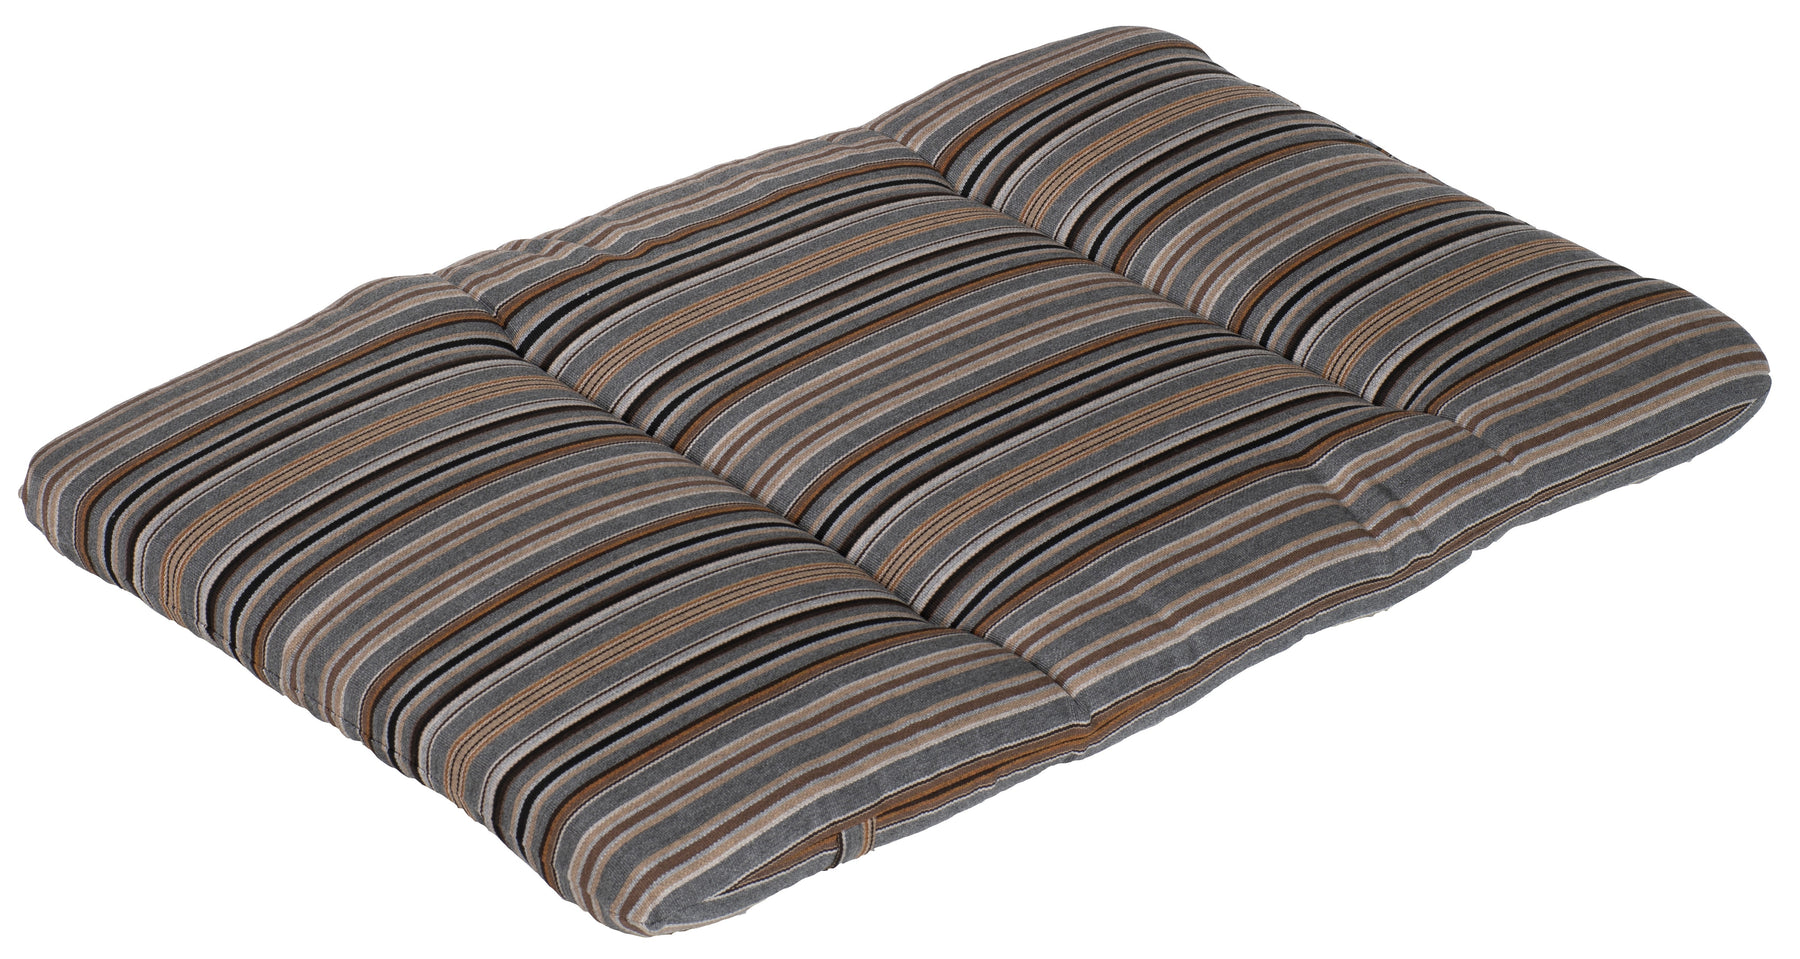 Berlin Gardens Mayhew Adirondack Back Cushion